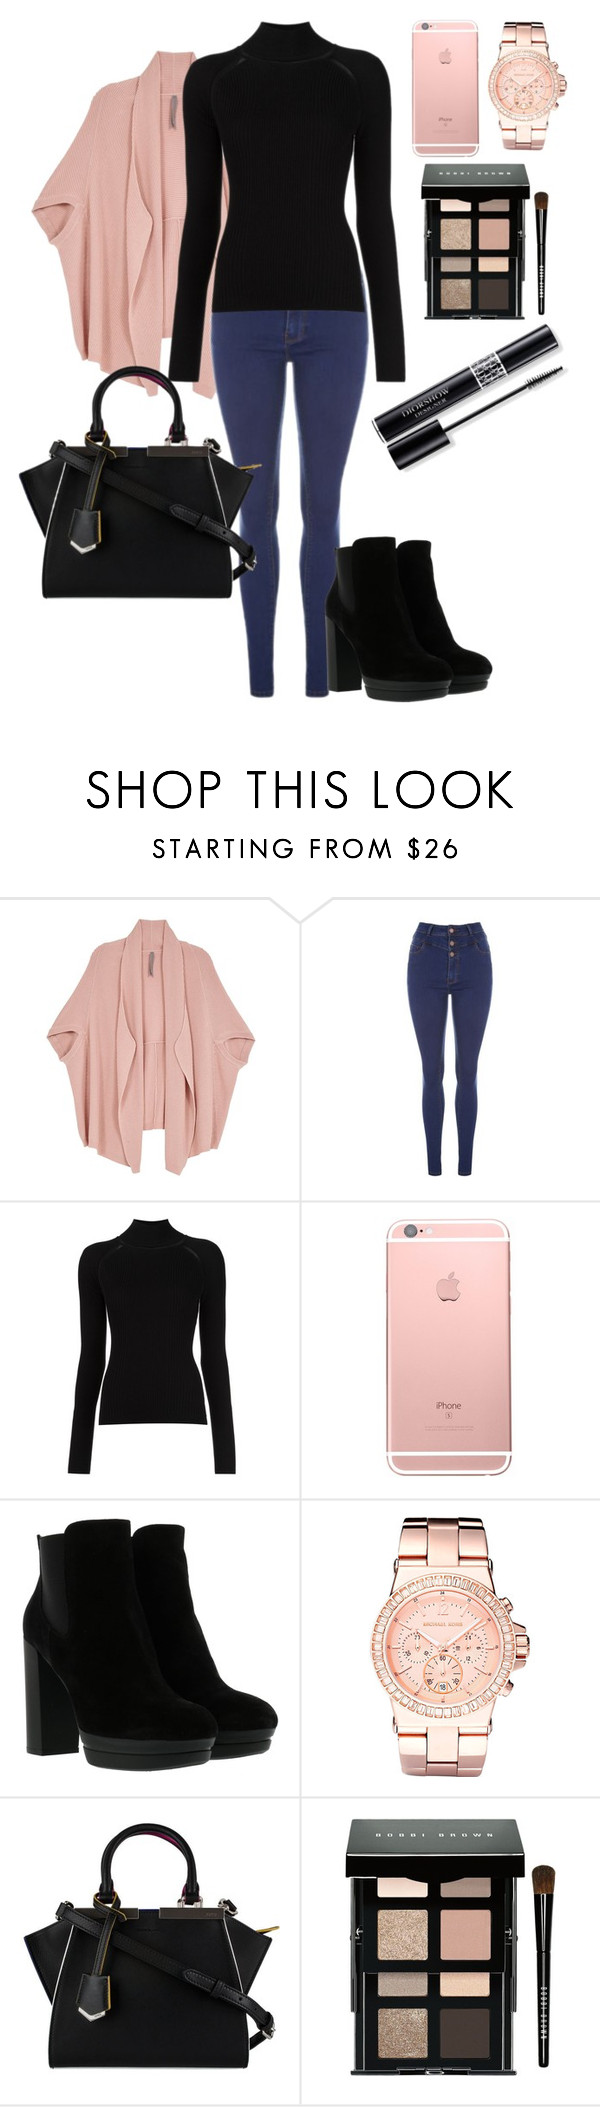 """""""work"""" by meen16 ❤ liked on Polyvore featuring Melissa McCarthy Seven7, Misha Nonoo, Hogan, Michael Kors, Fendi, Bobbi Brown Cosmetics, Christian Dior and plus size clothing"""